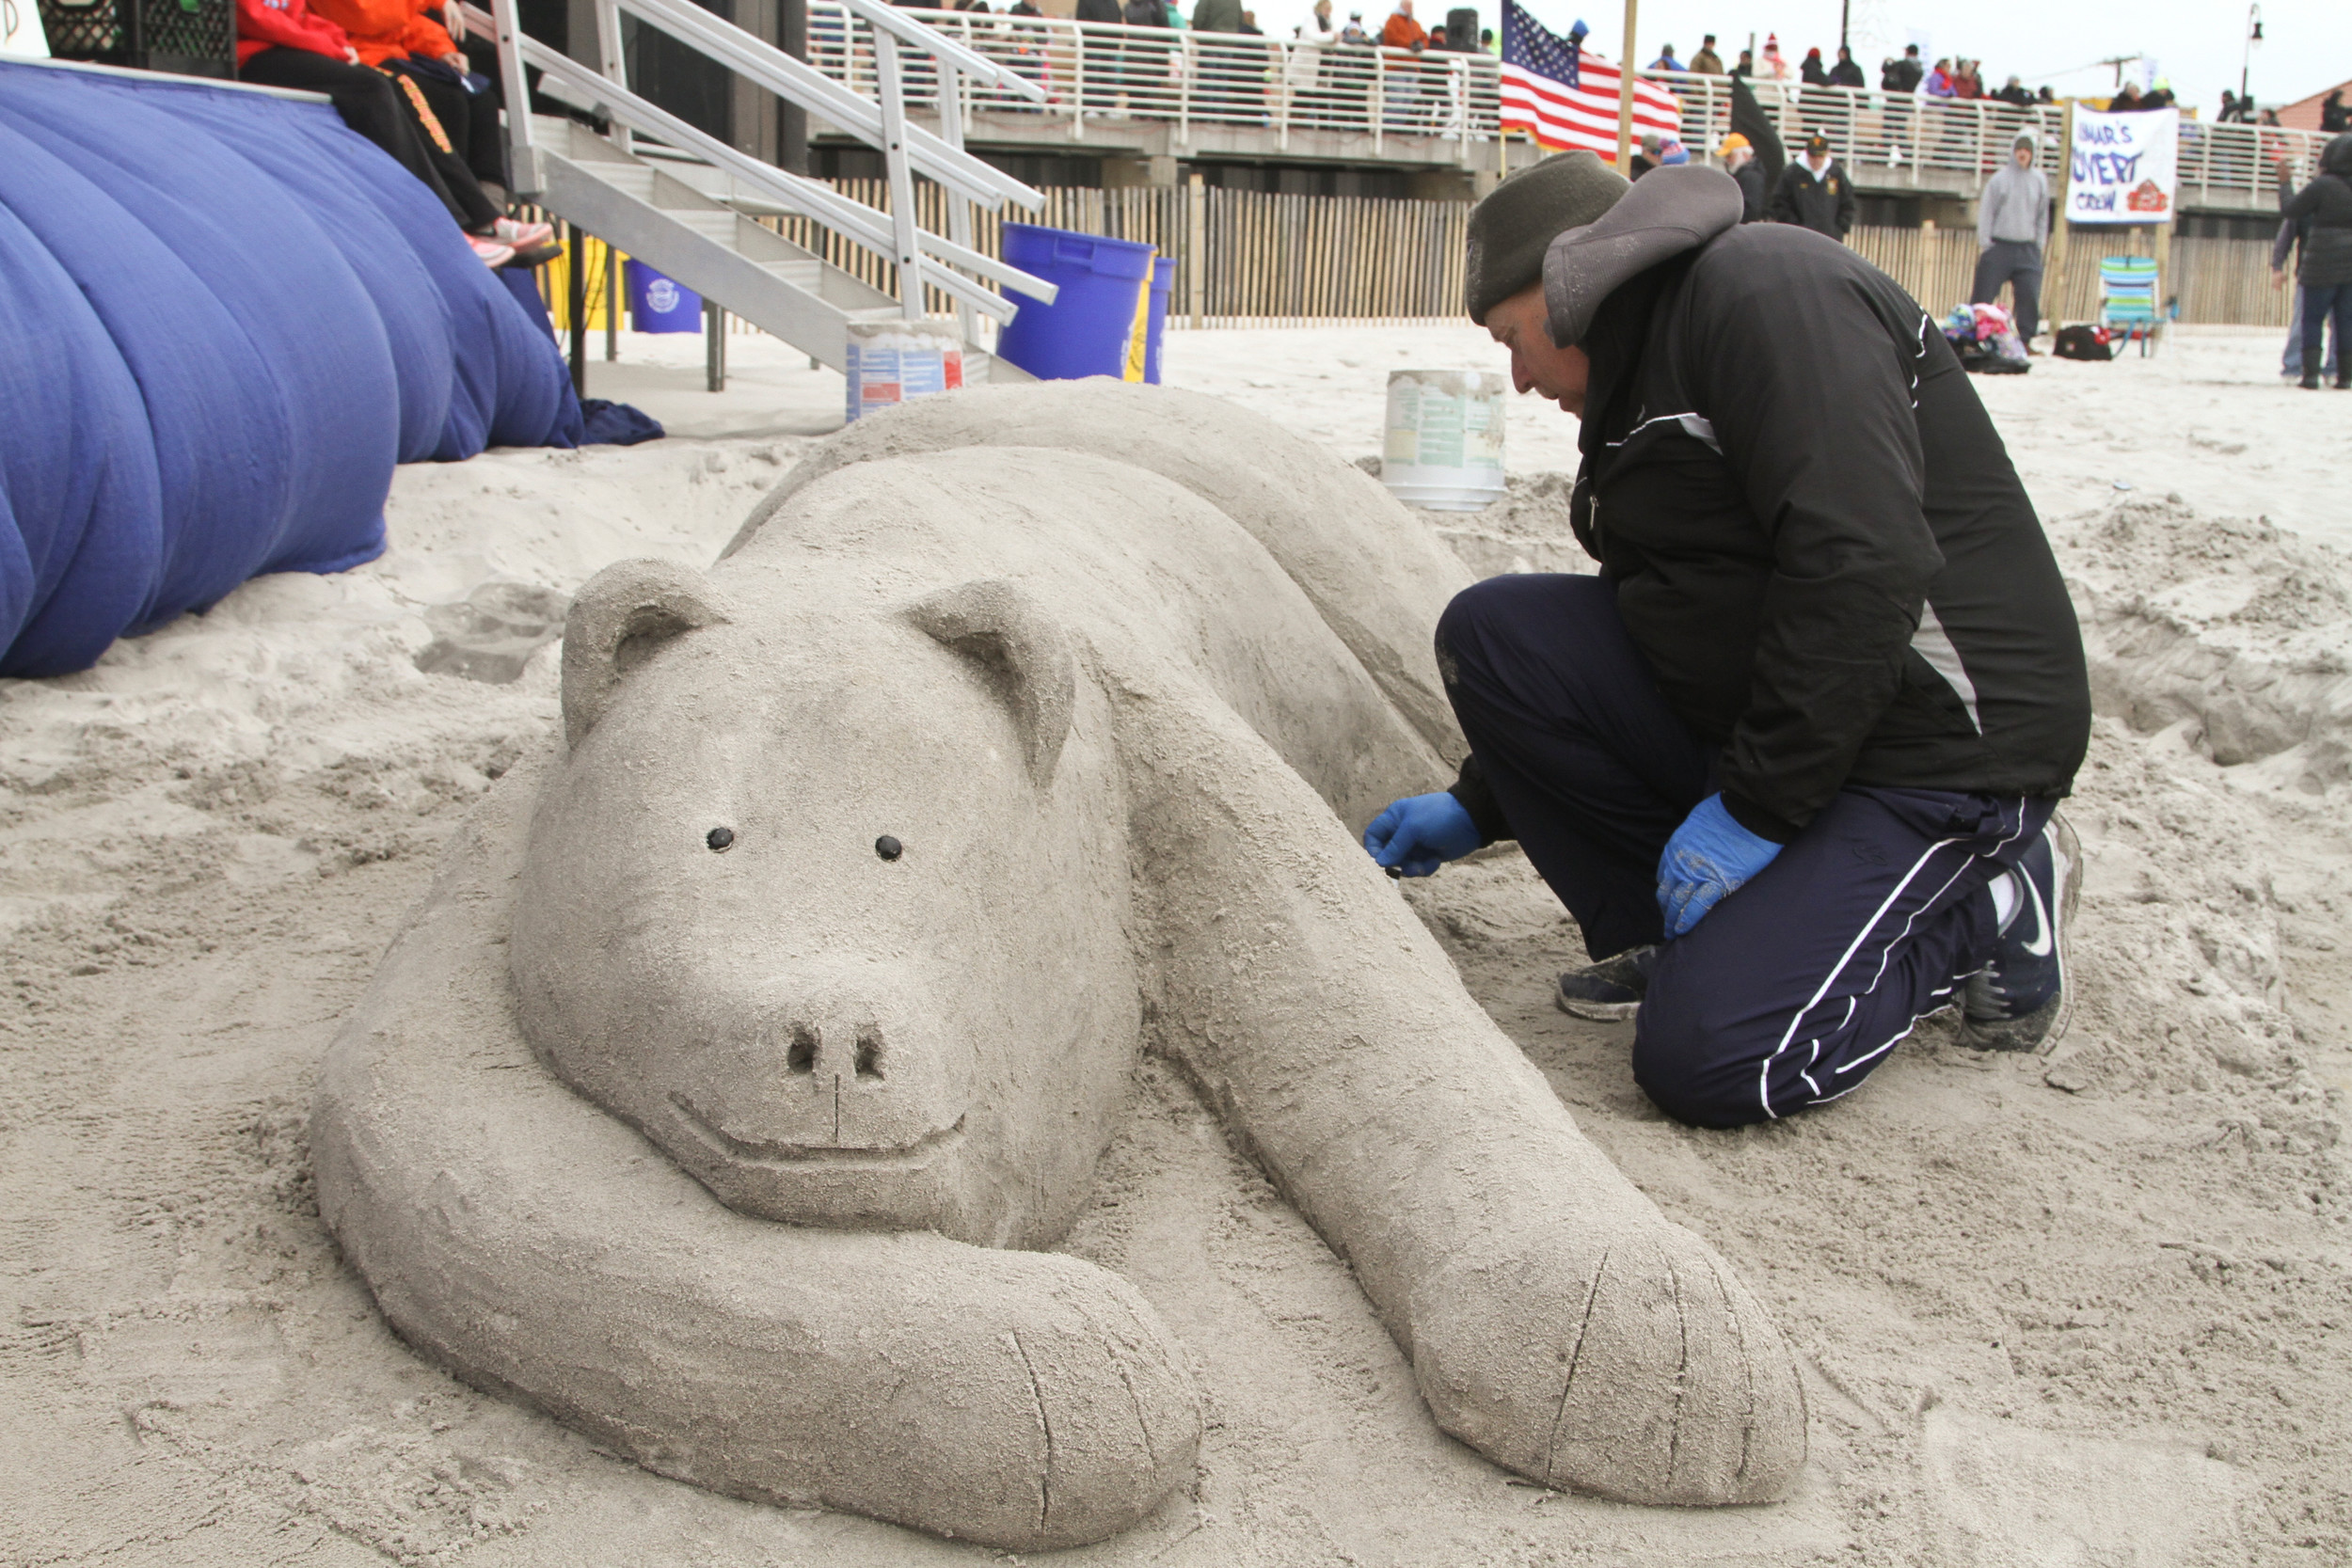 A sand sculptor created a polar bear in front of the bandstand.